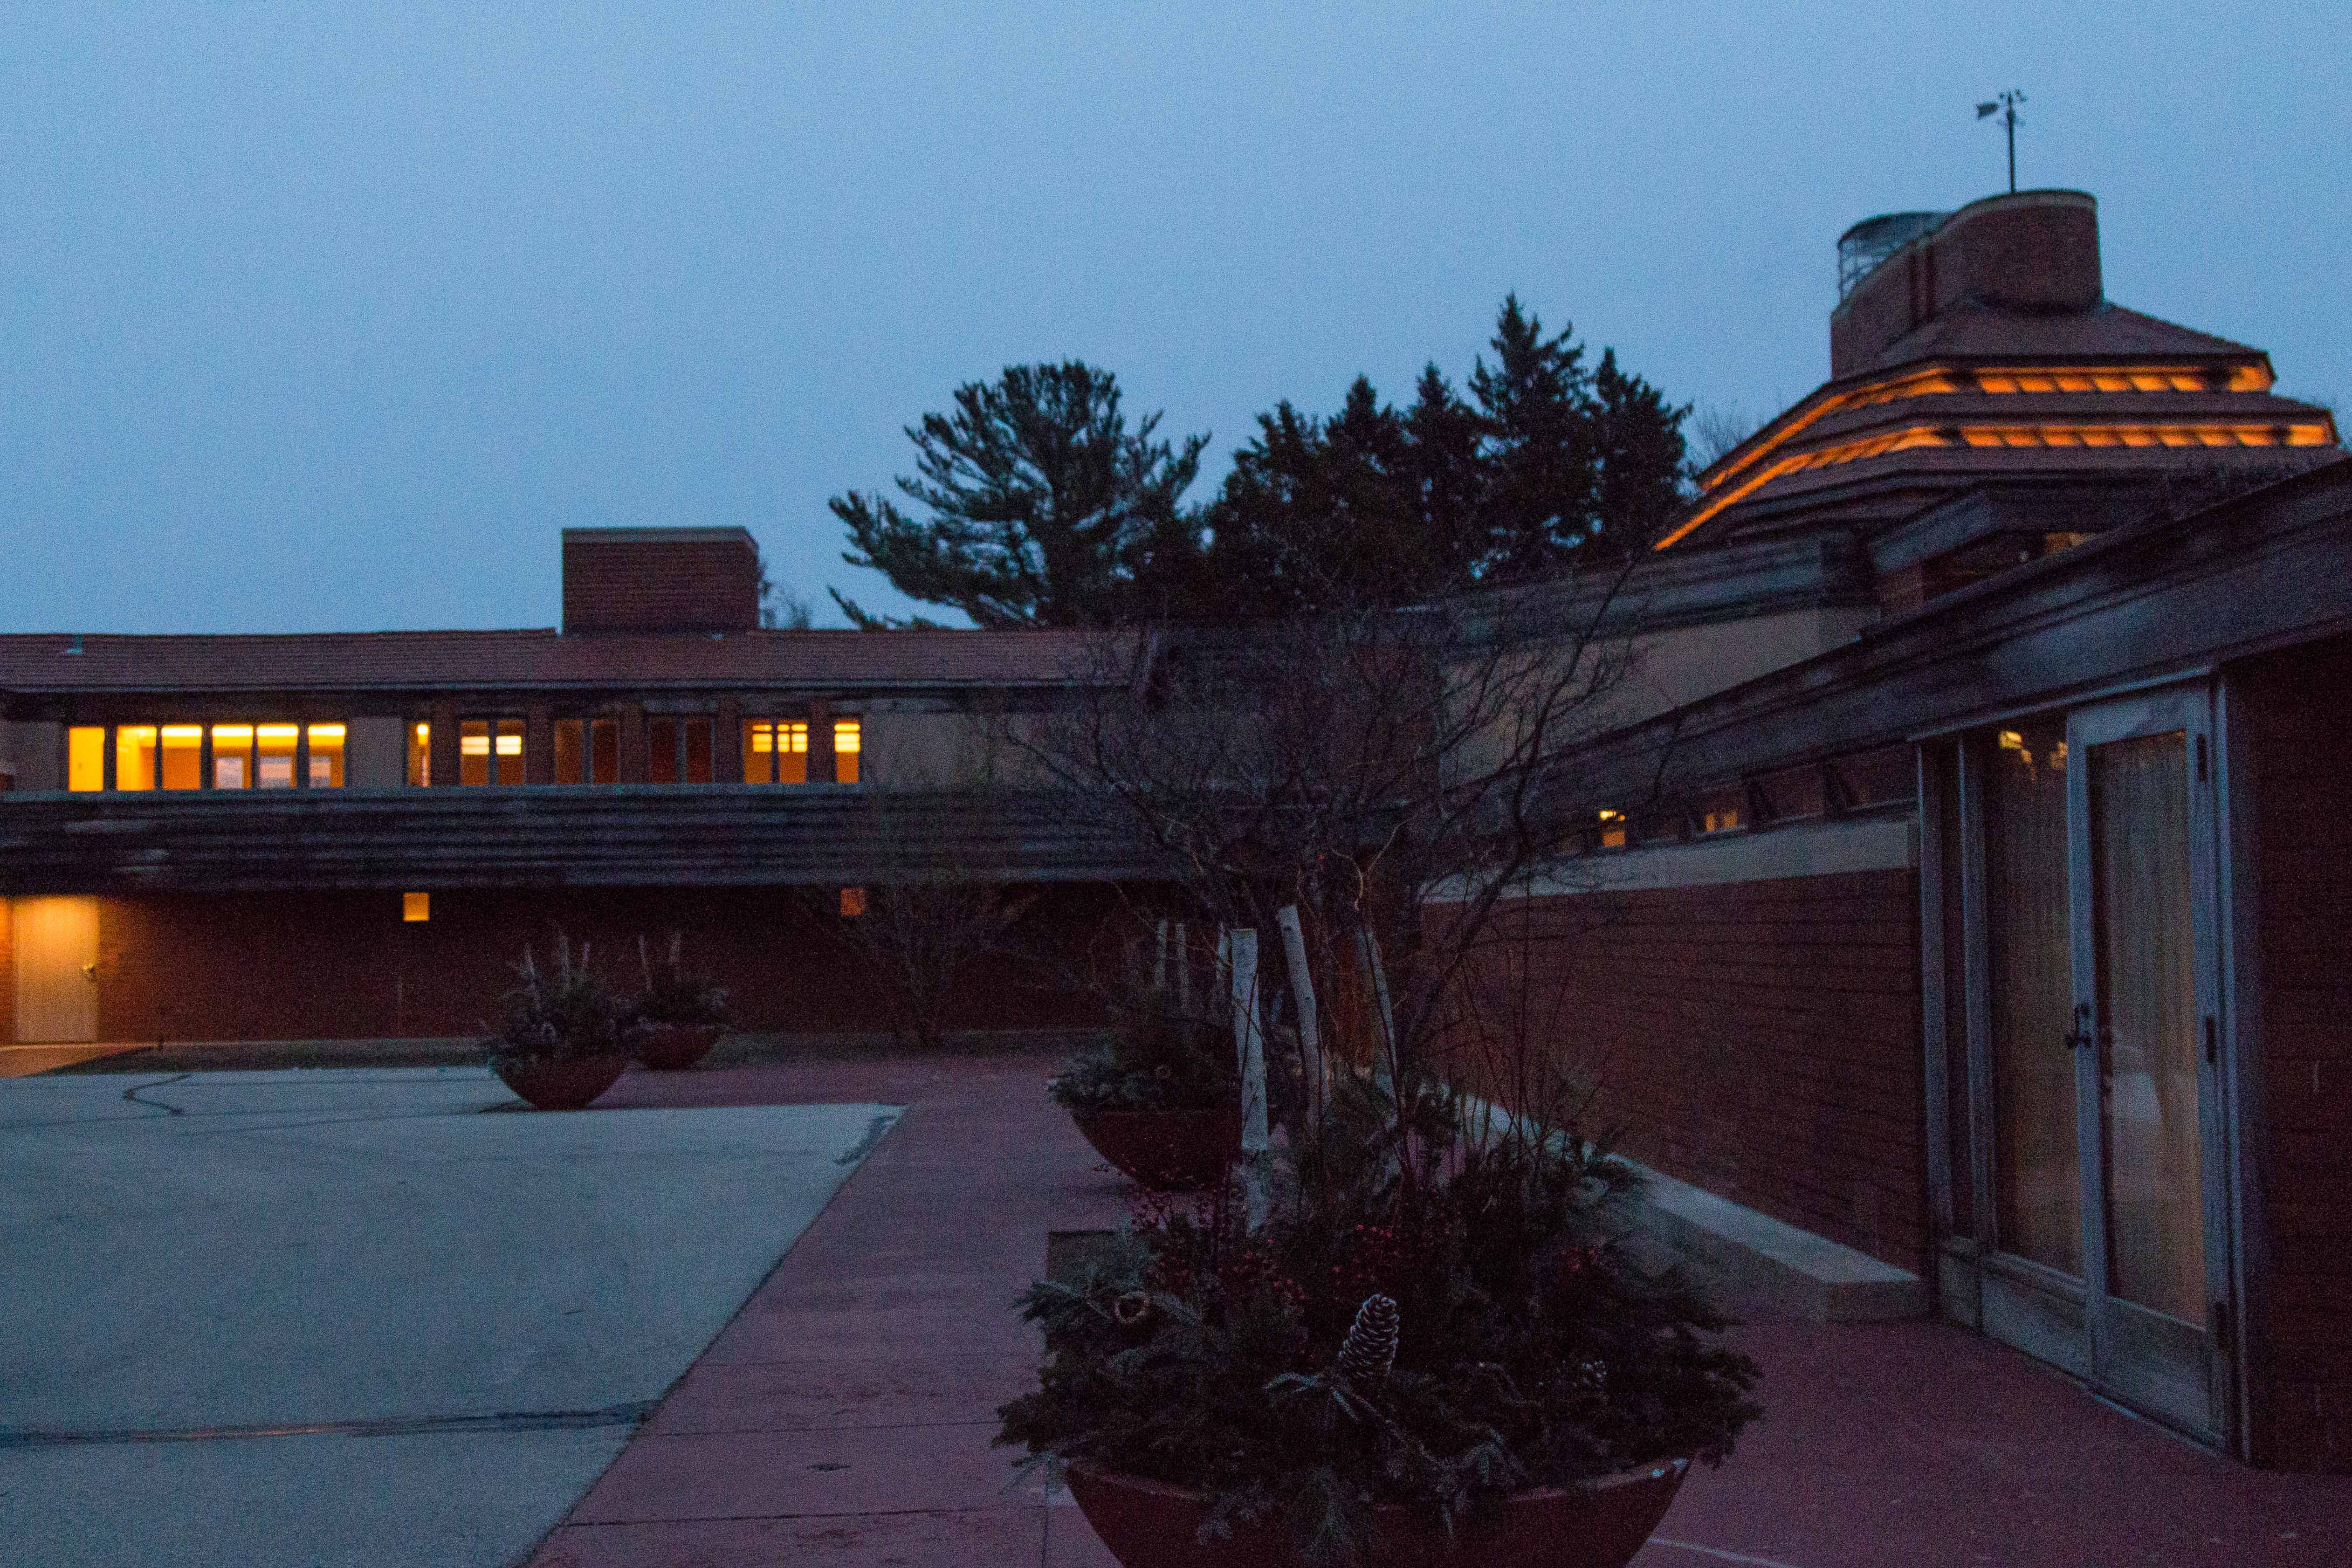 The Johnson Foundation at Wingspread in Racine, WI - Frank Lloyd Wright architecture | https://www.roseclearfield.com